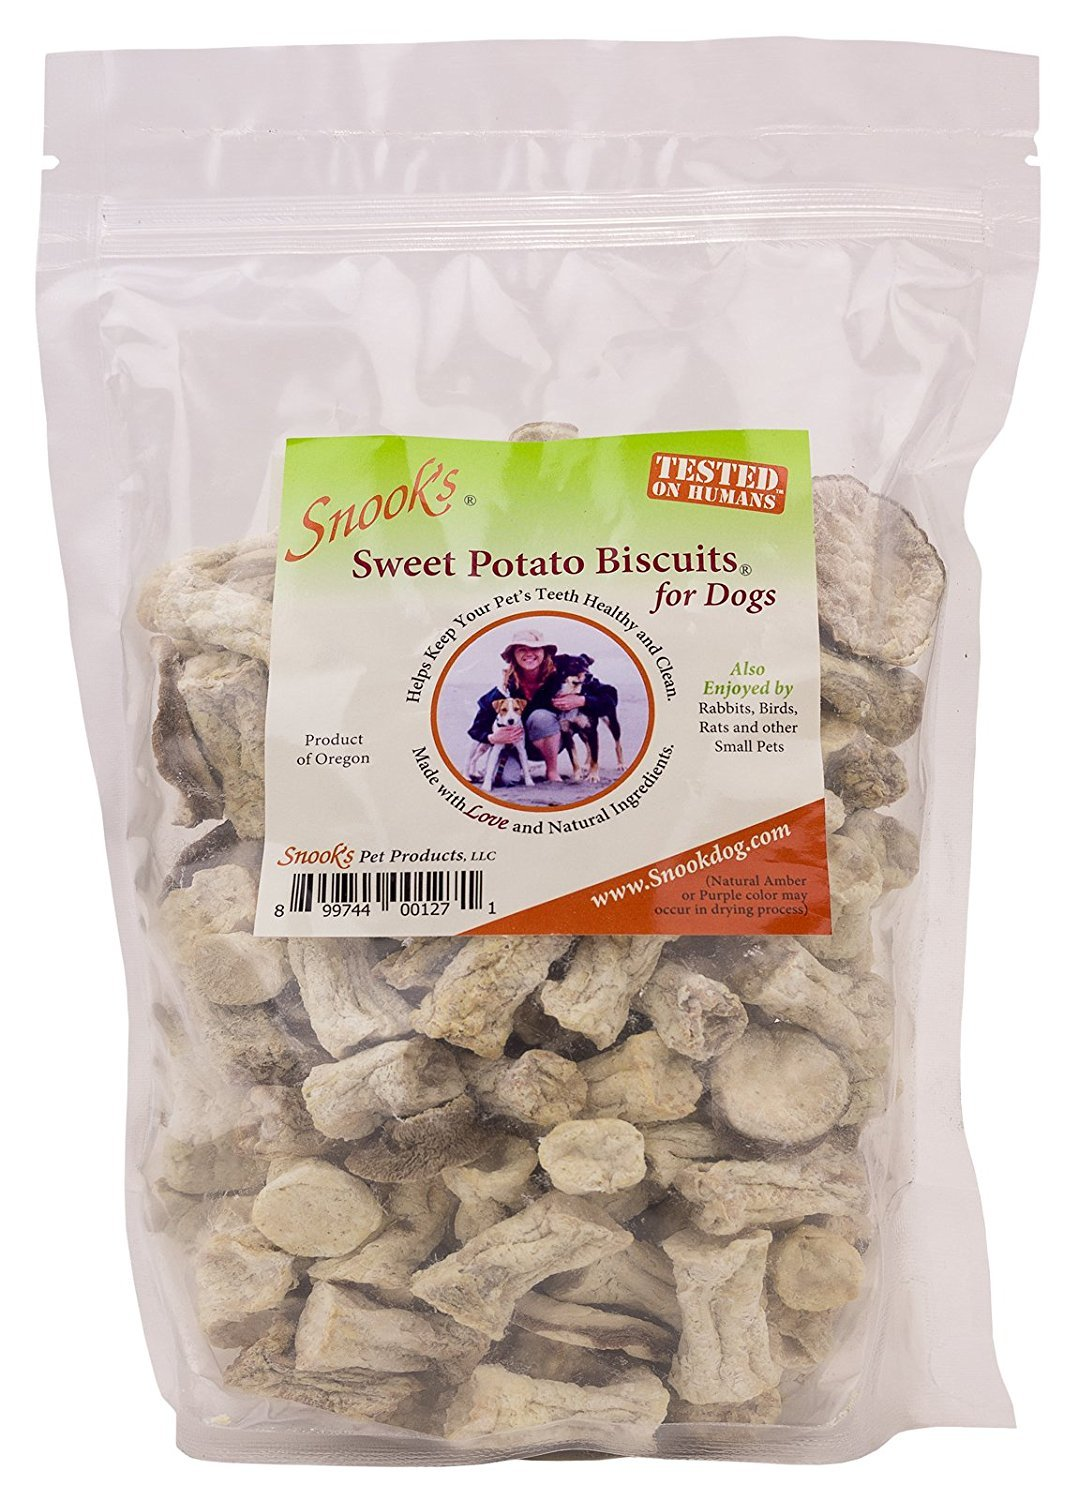 Snook's Sweet Potato Biscuits for Dogs, 8oz